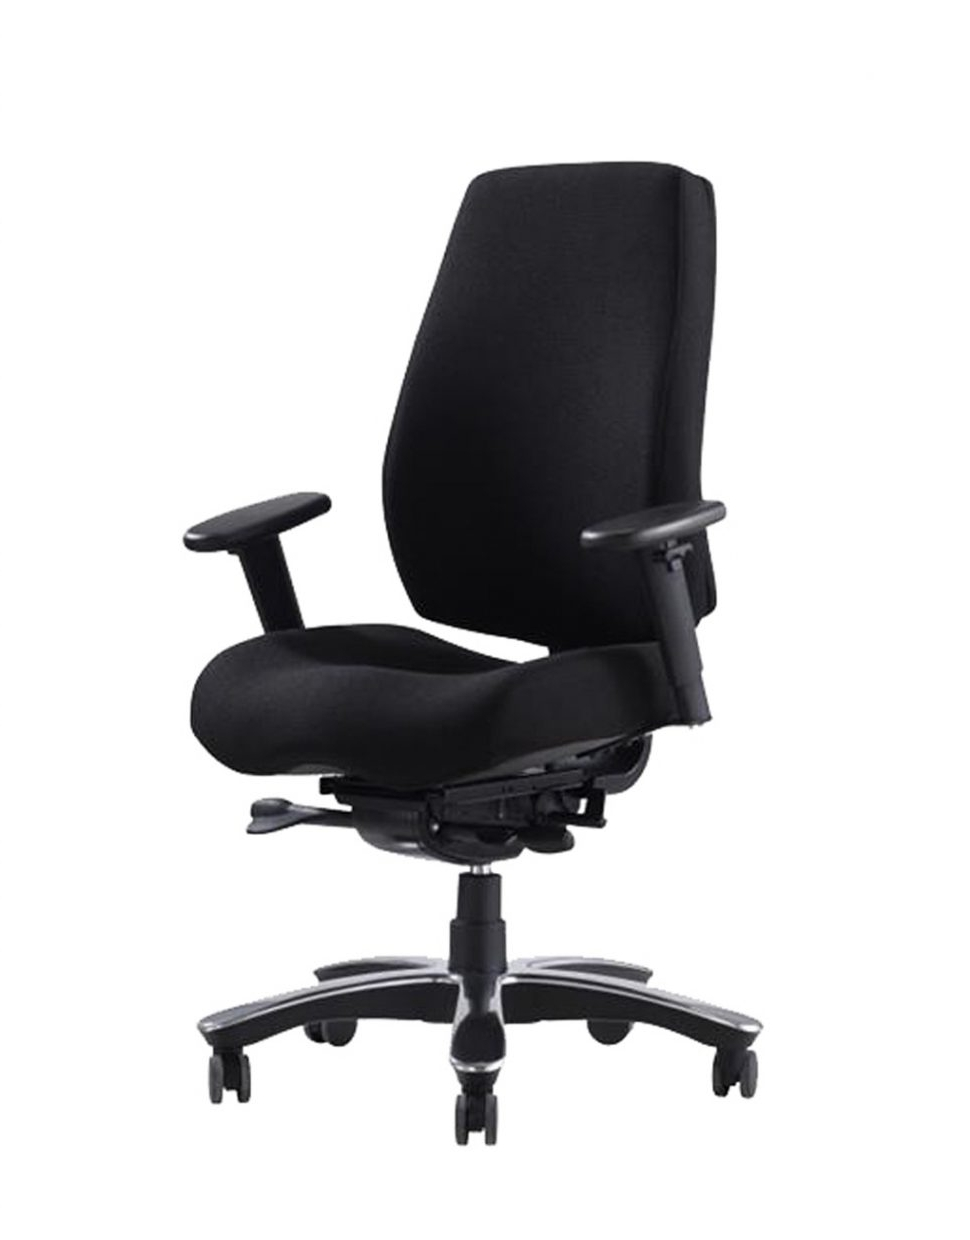 Executive Office Chairs Without Arms Regarding Most Popular Furniture : Executive Office Chair Ergonomic Office Chair' Big And (View 6 of 20)